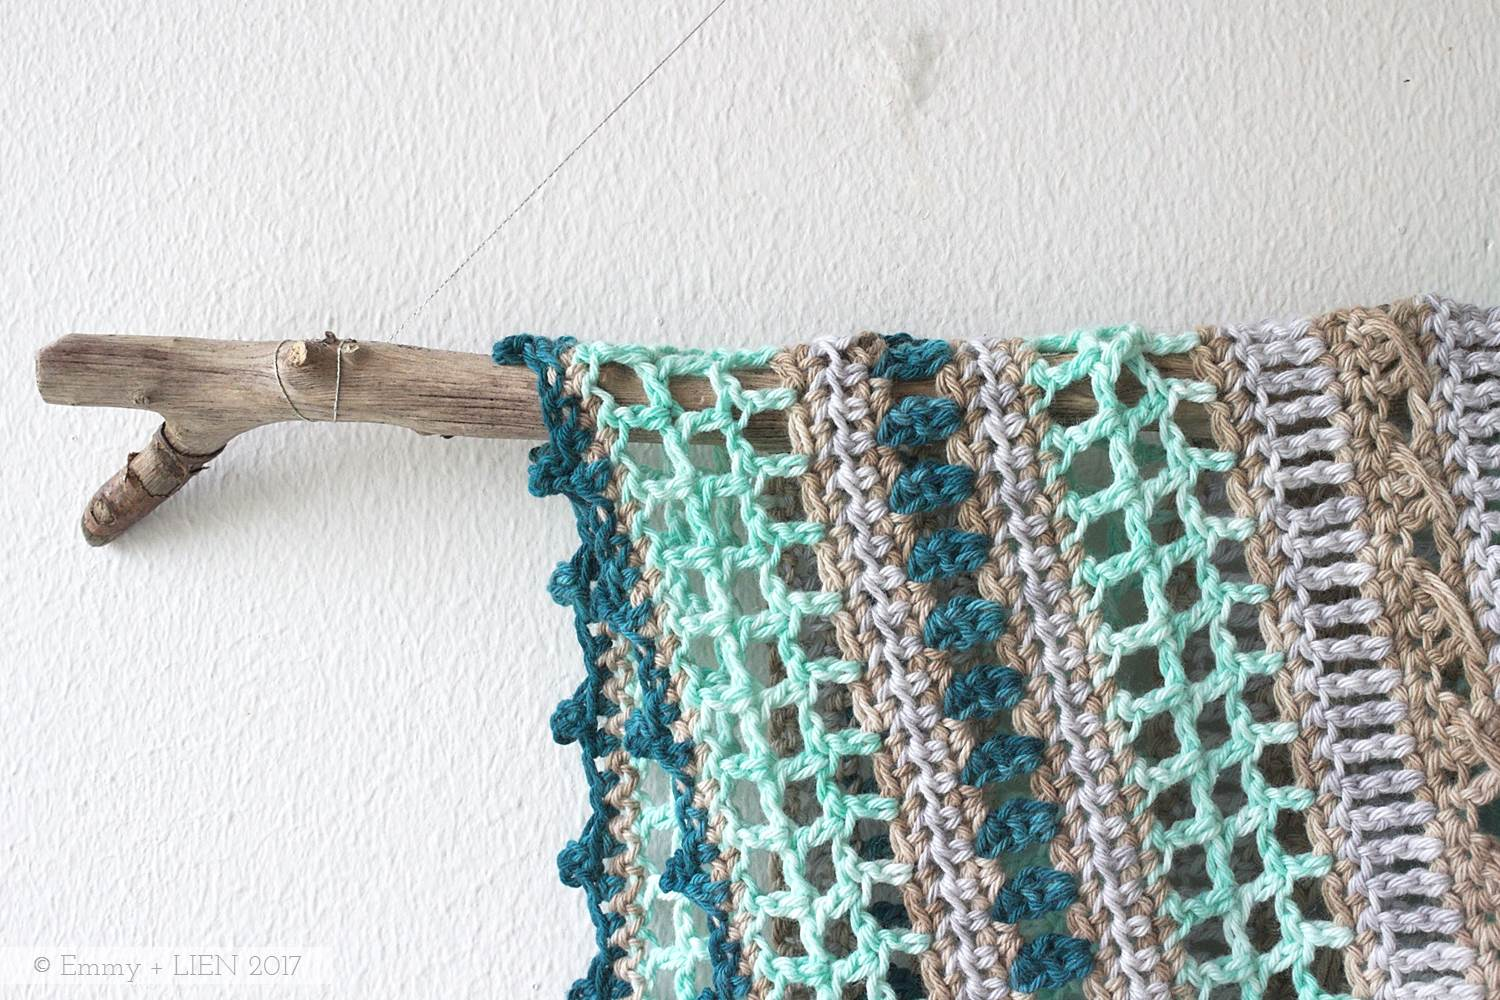 Sea Glass Shawl crochet pattern by Eline Alcocer (first published in Crochet Now issue 15)